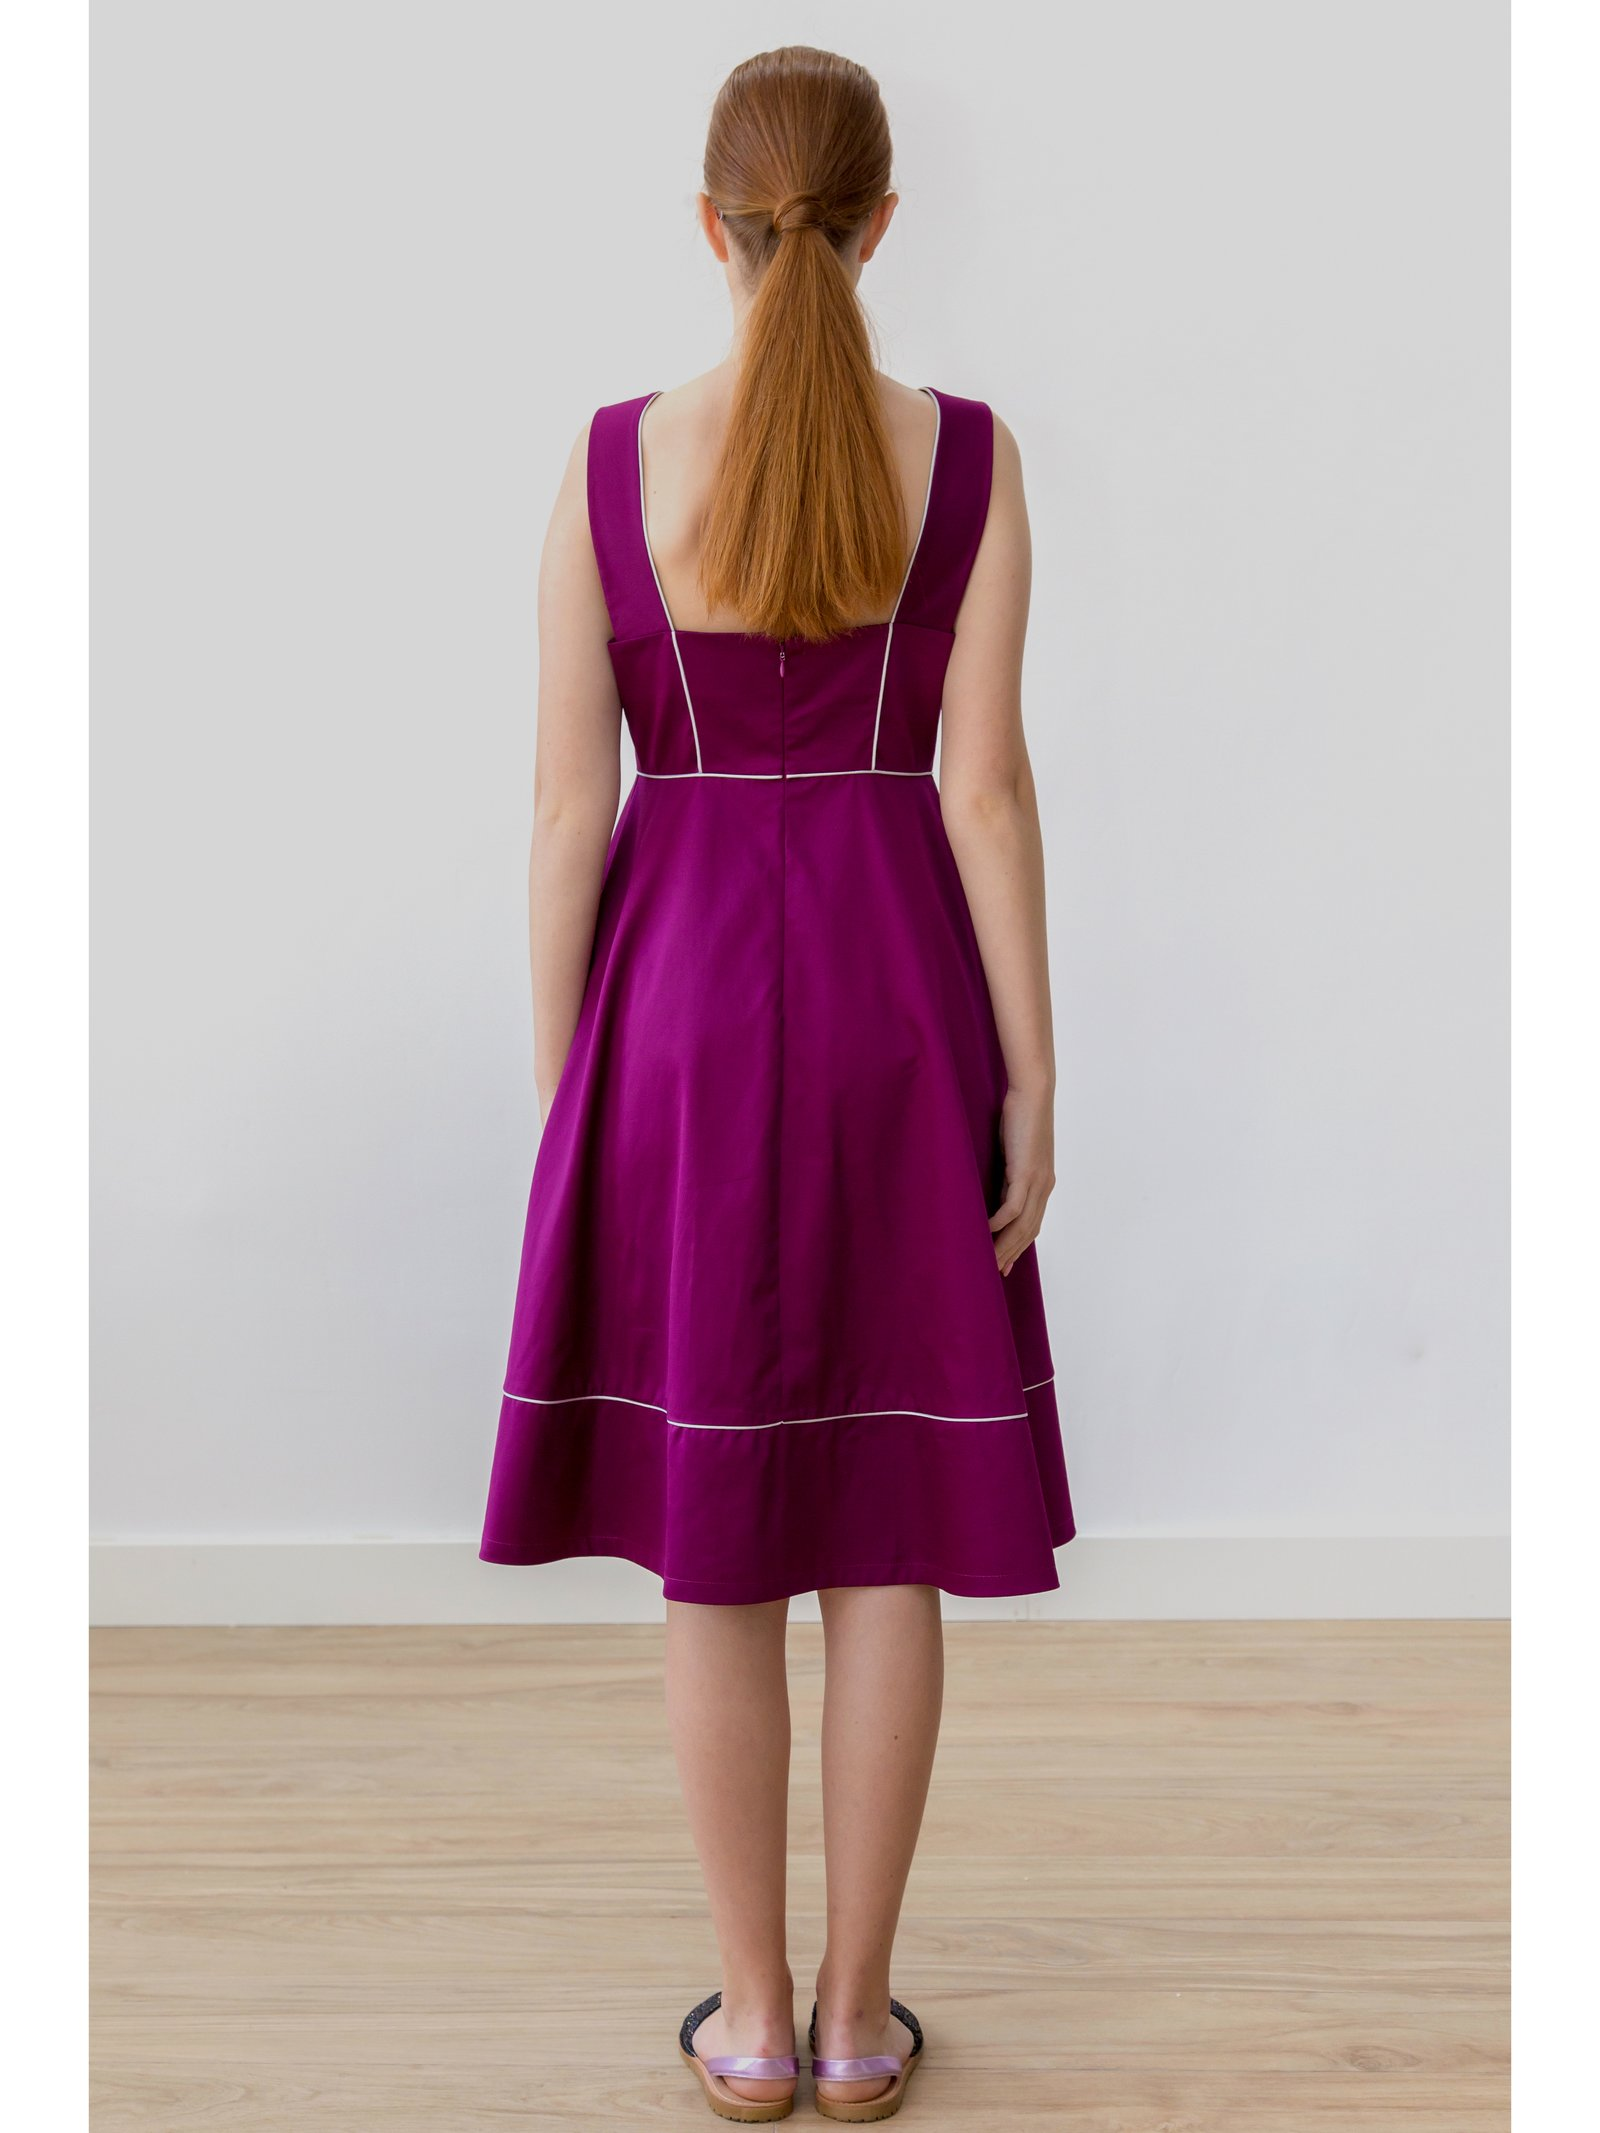 HB by Hanna Baranava Purple Medium Drees